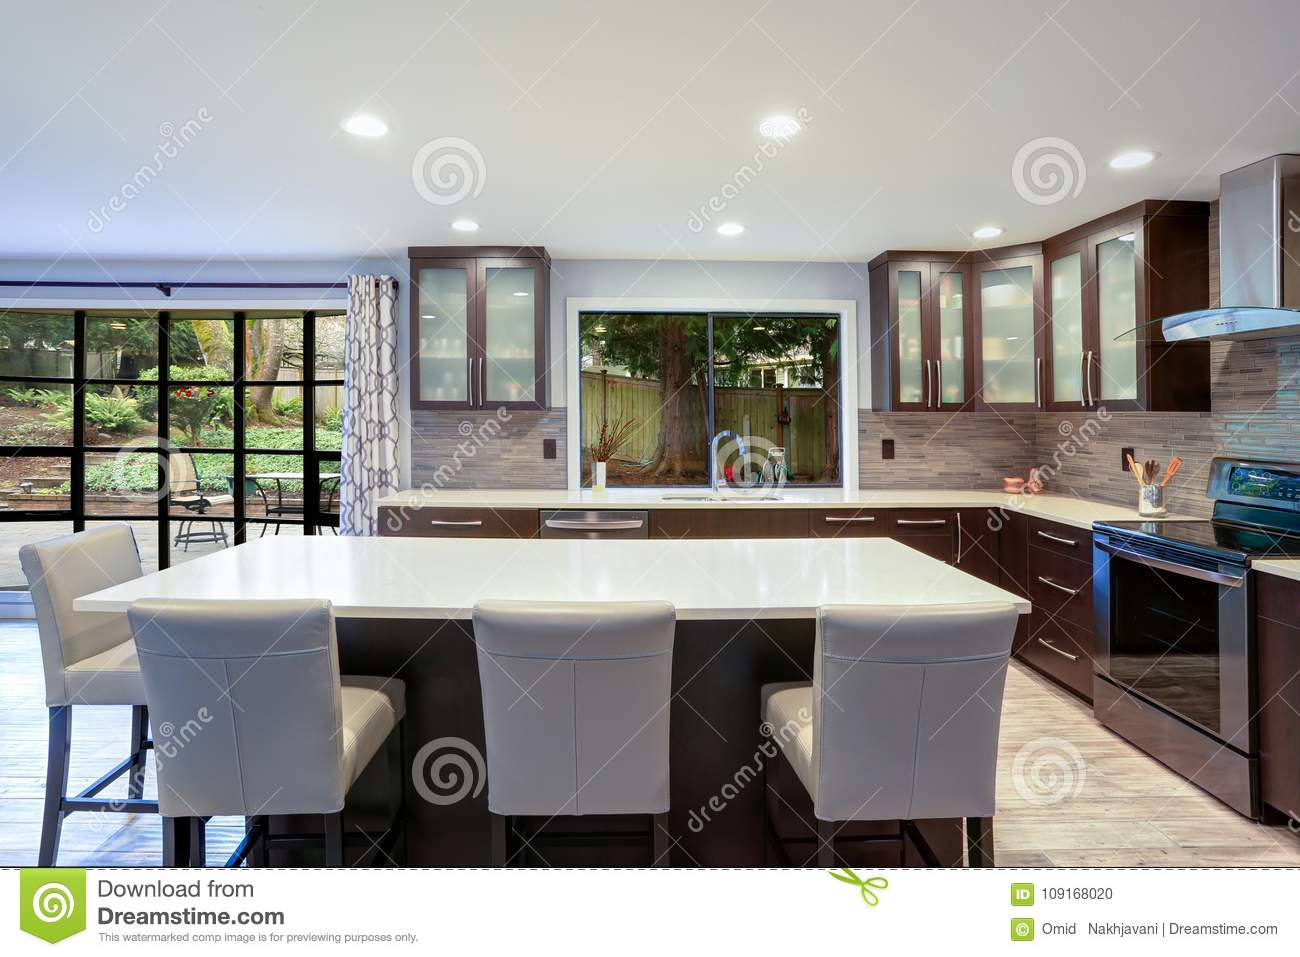 Updated contemporary kitchen room interior in white and brown tones.